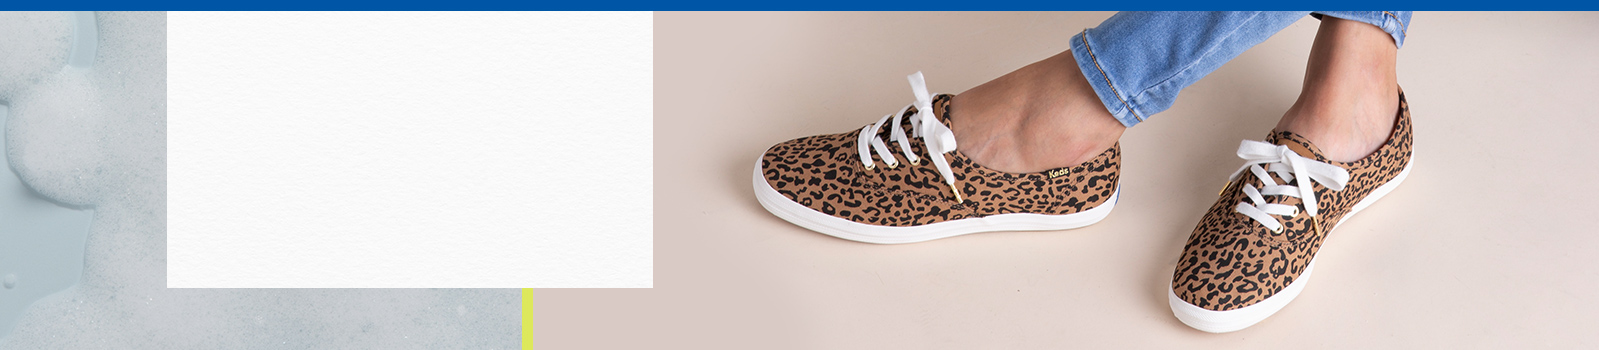 Women's legs wearing Keds Animal Print Washable Sneakers